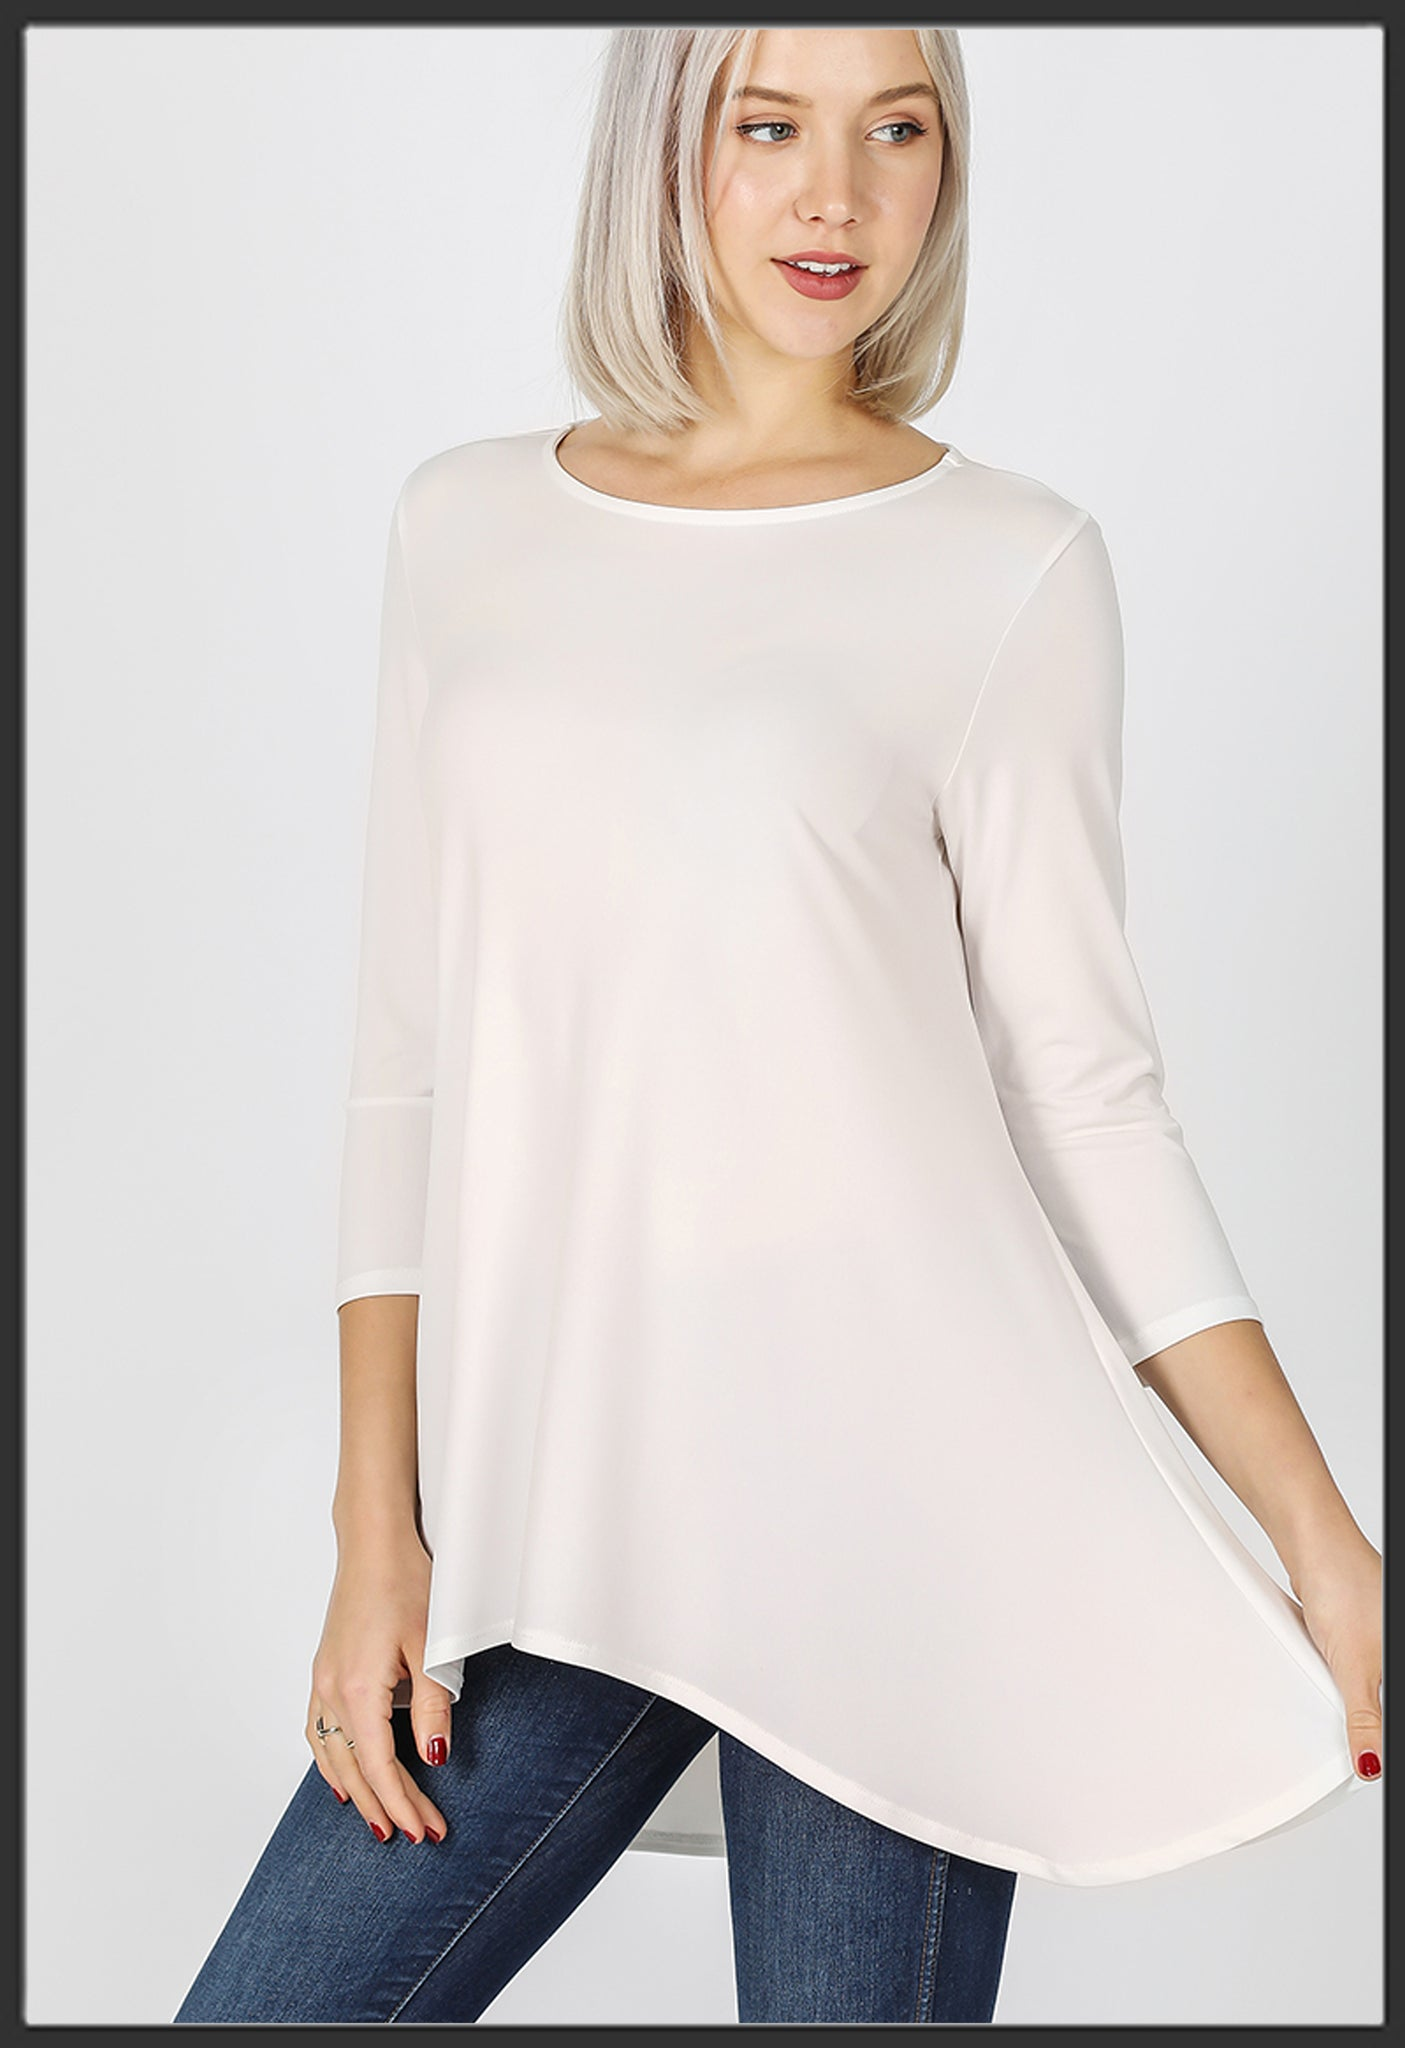 Women's Solid Ivory Top 3/4 Sleeve High Low Hem Tunic Top Ivory - Arrow Trend Leggings